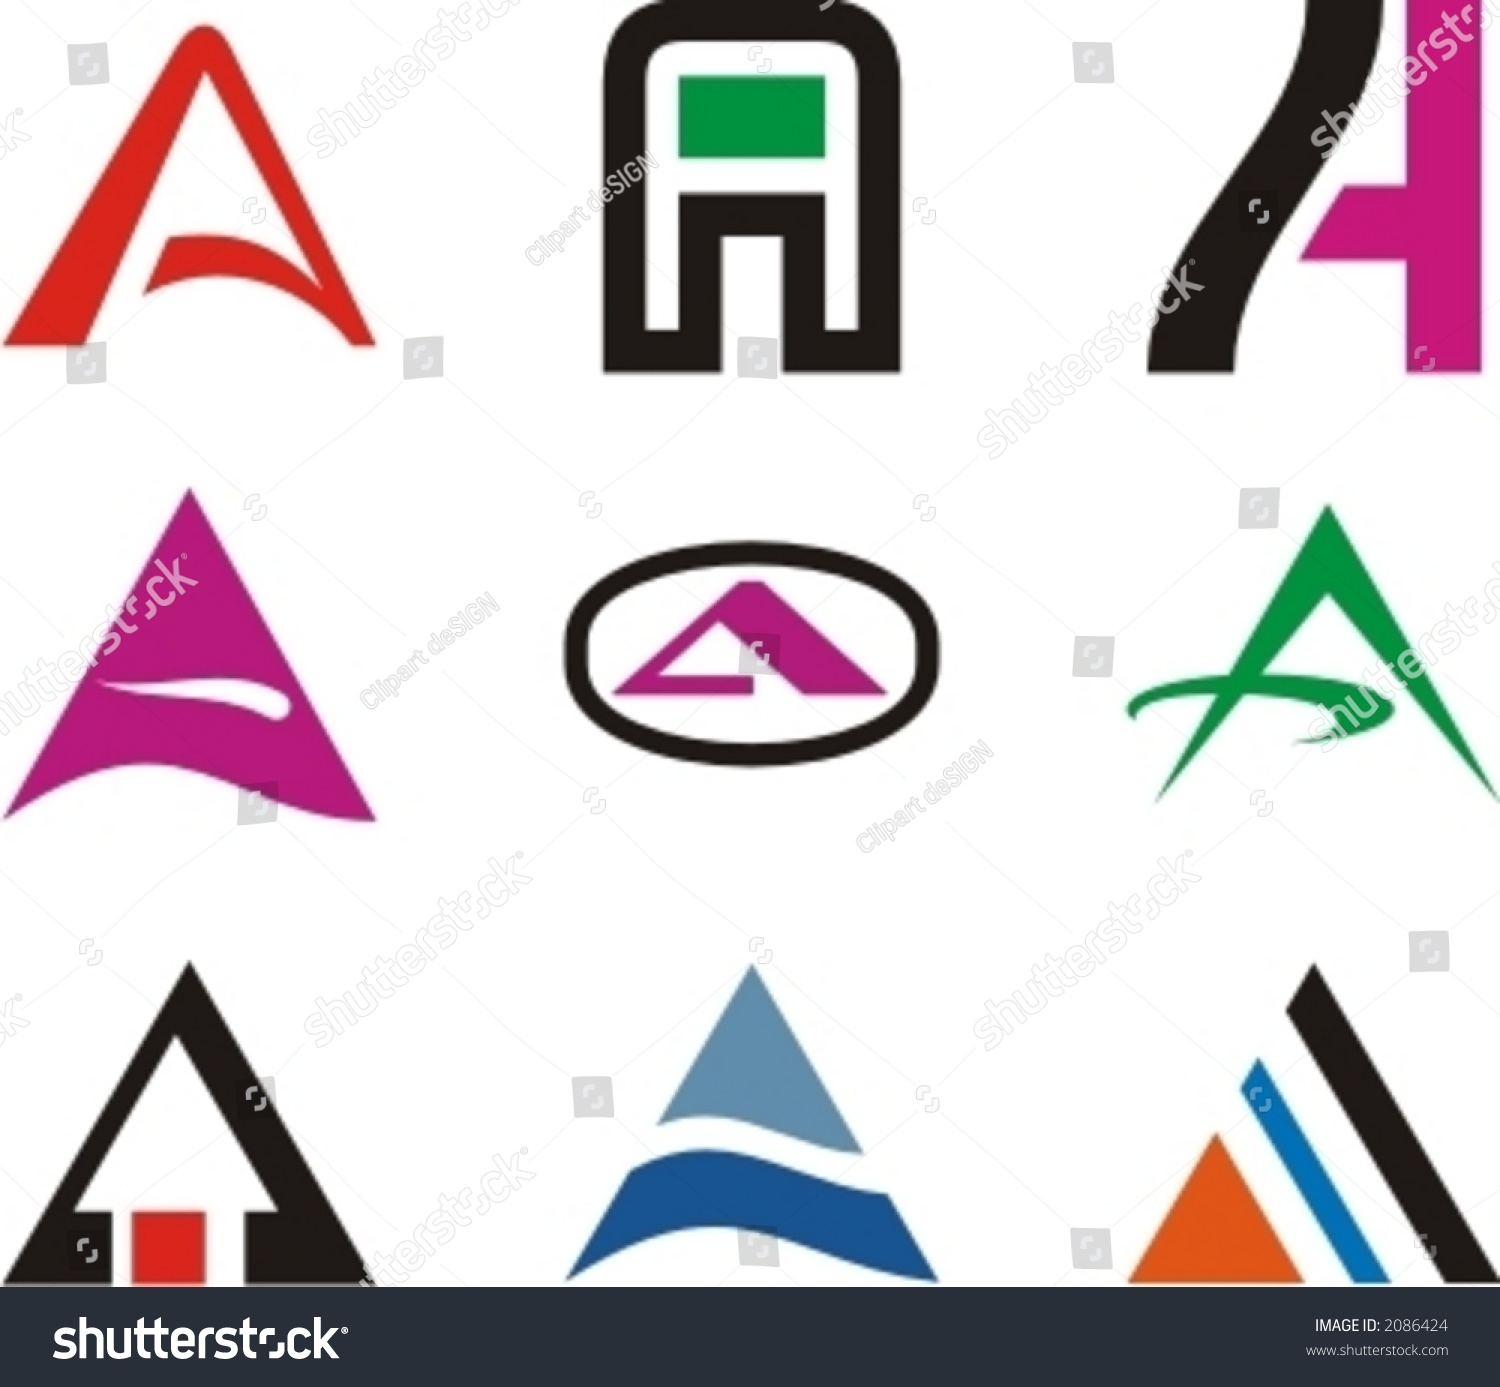 Alphabetical Logo Design Concepts. Letter A. Check my portfolio for ...